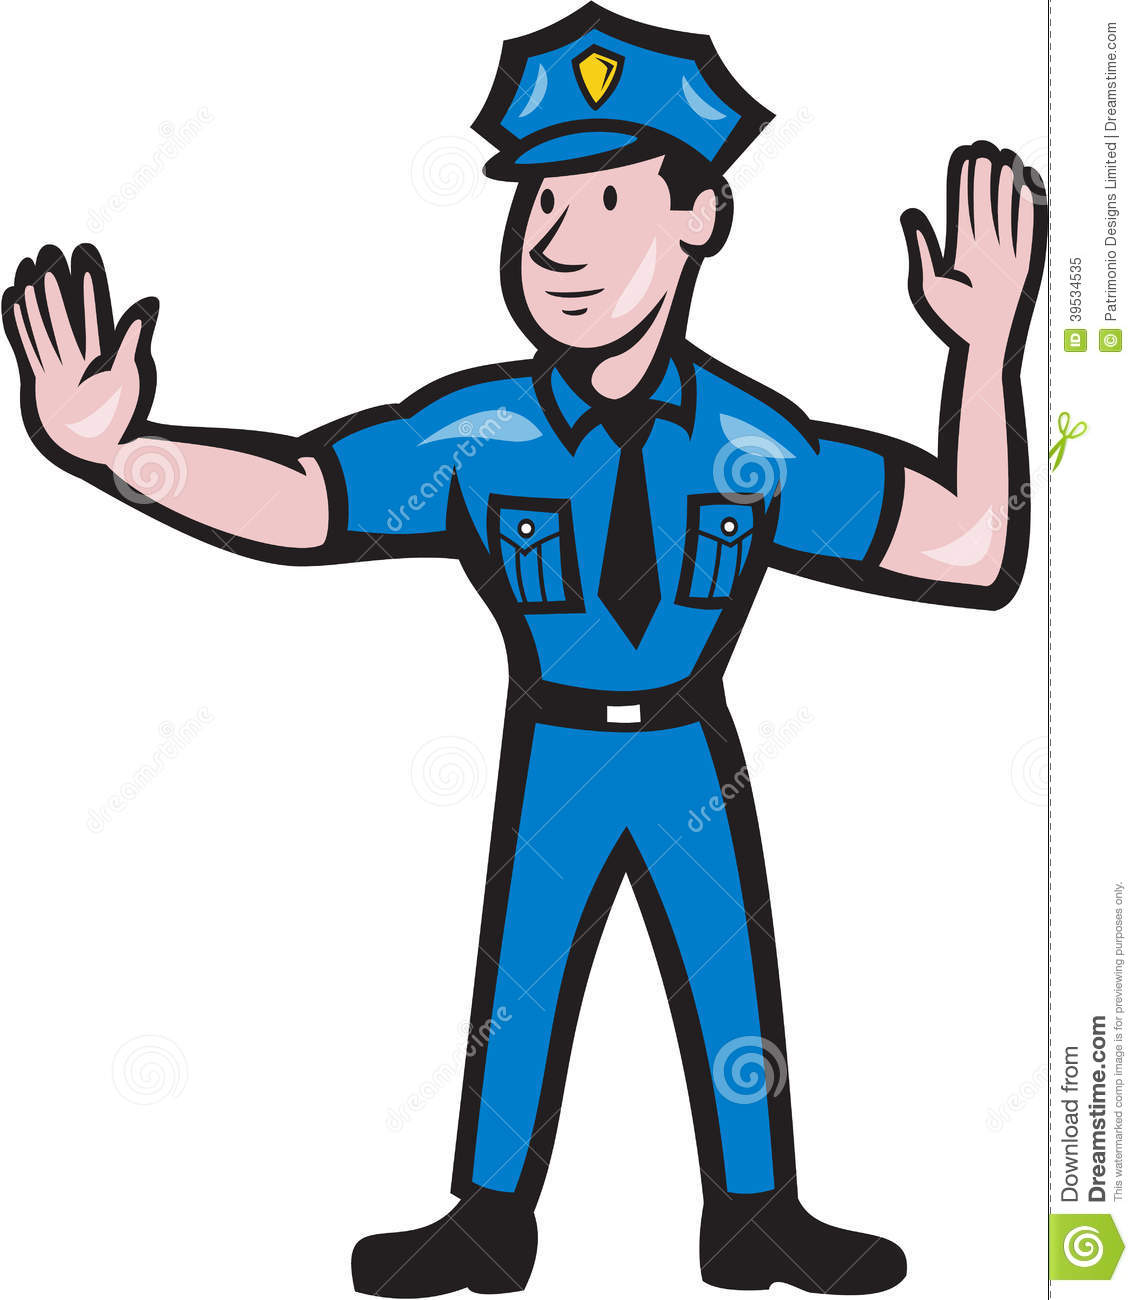 Traffic clipart police officer Panda Images Clipart Funny Clipart